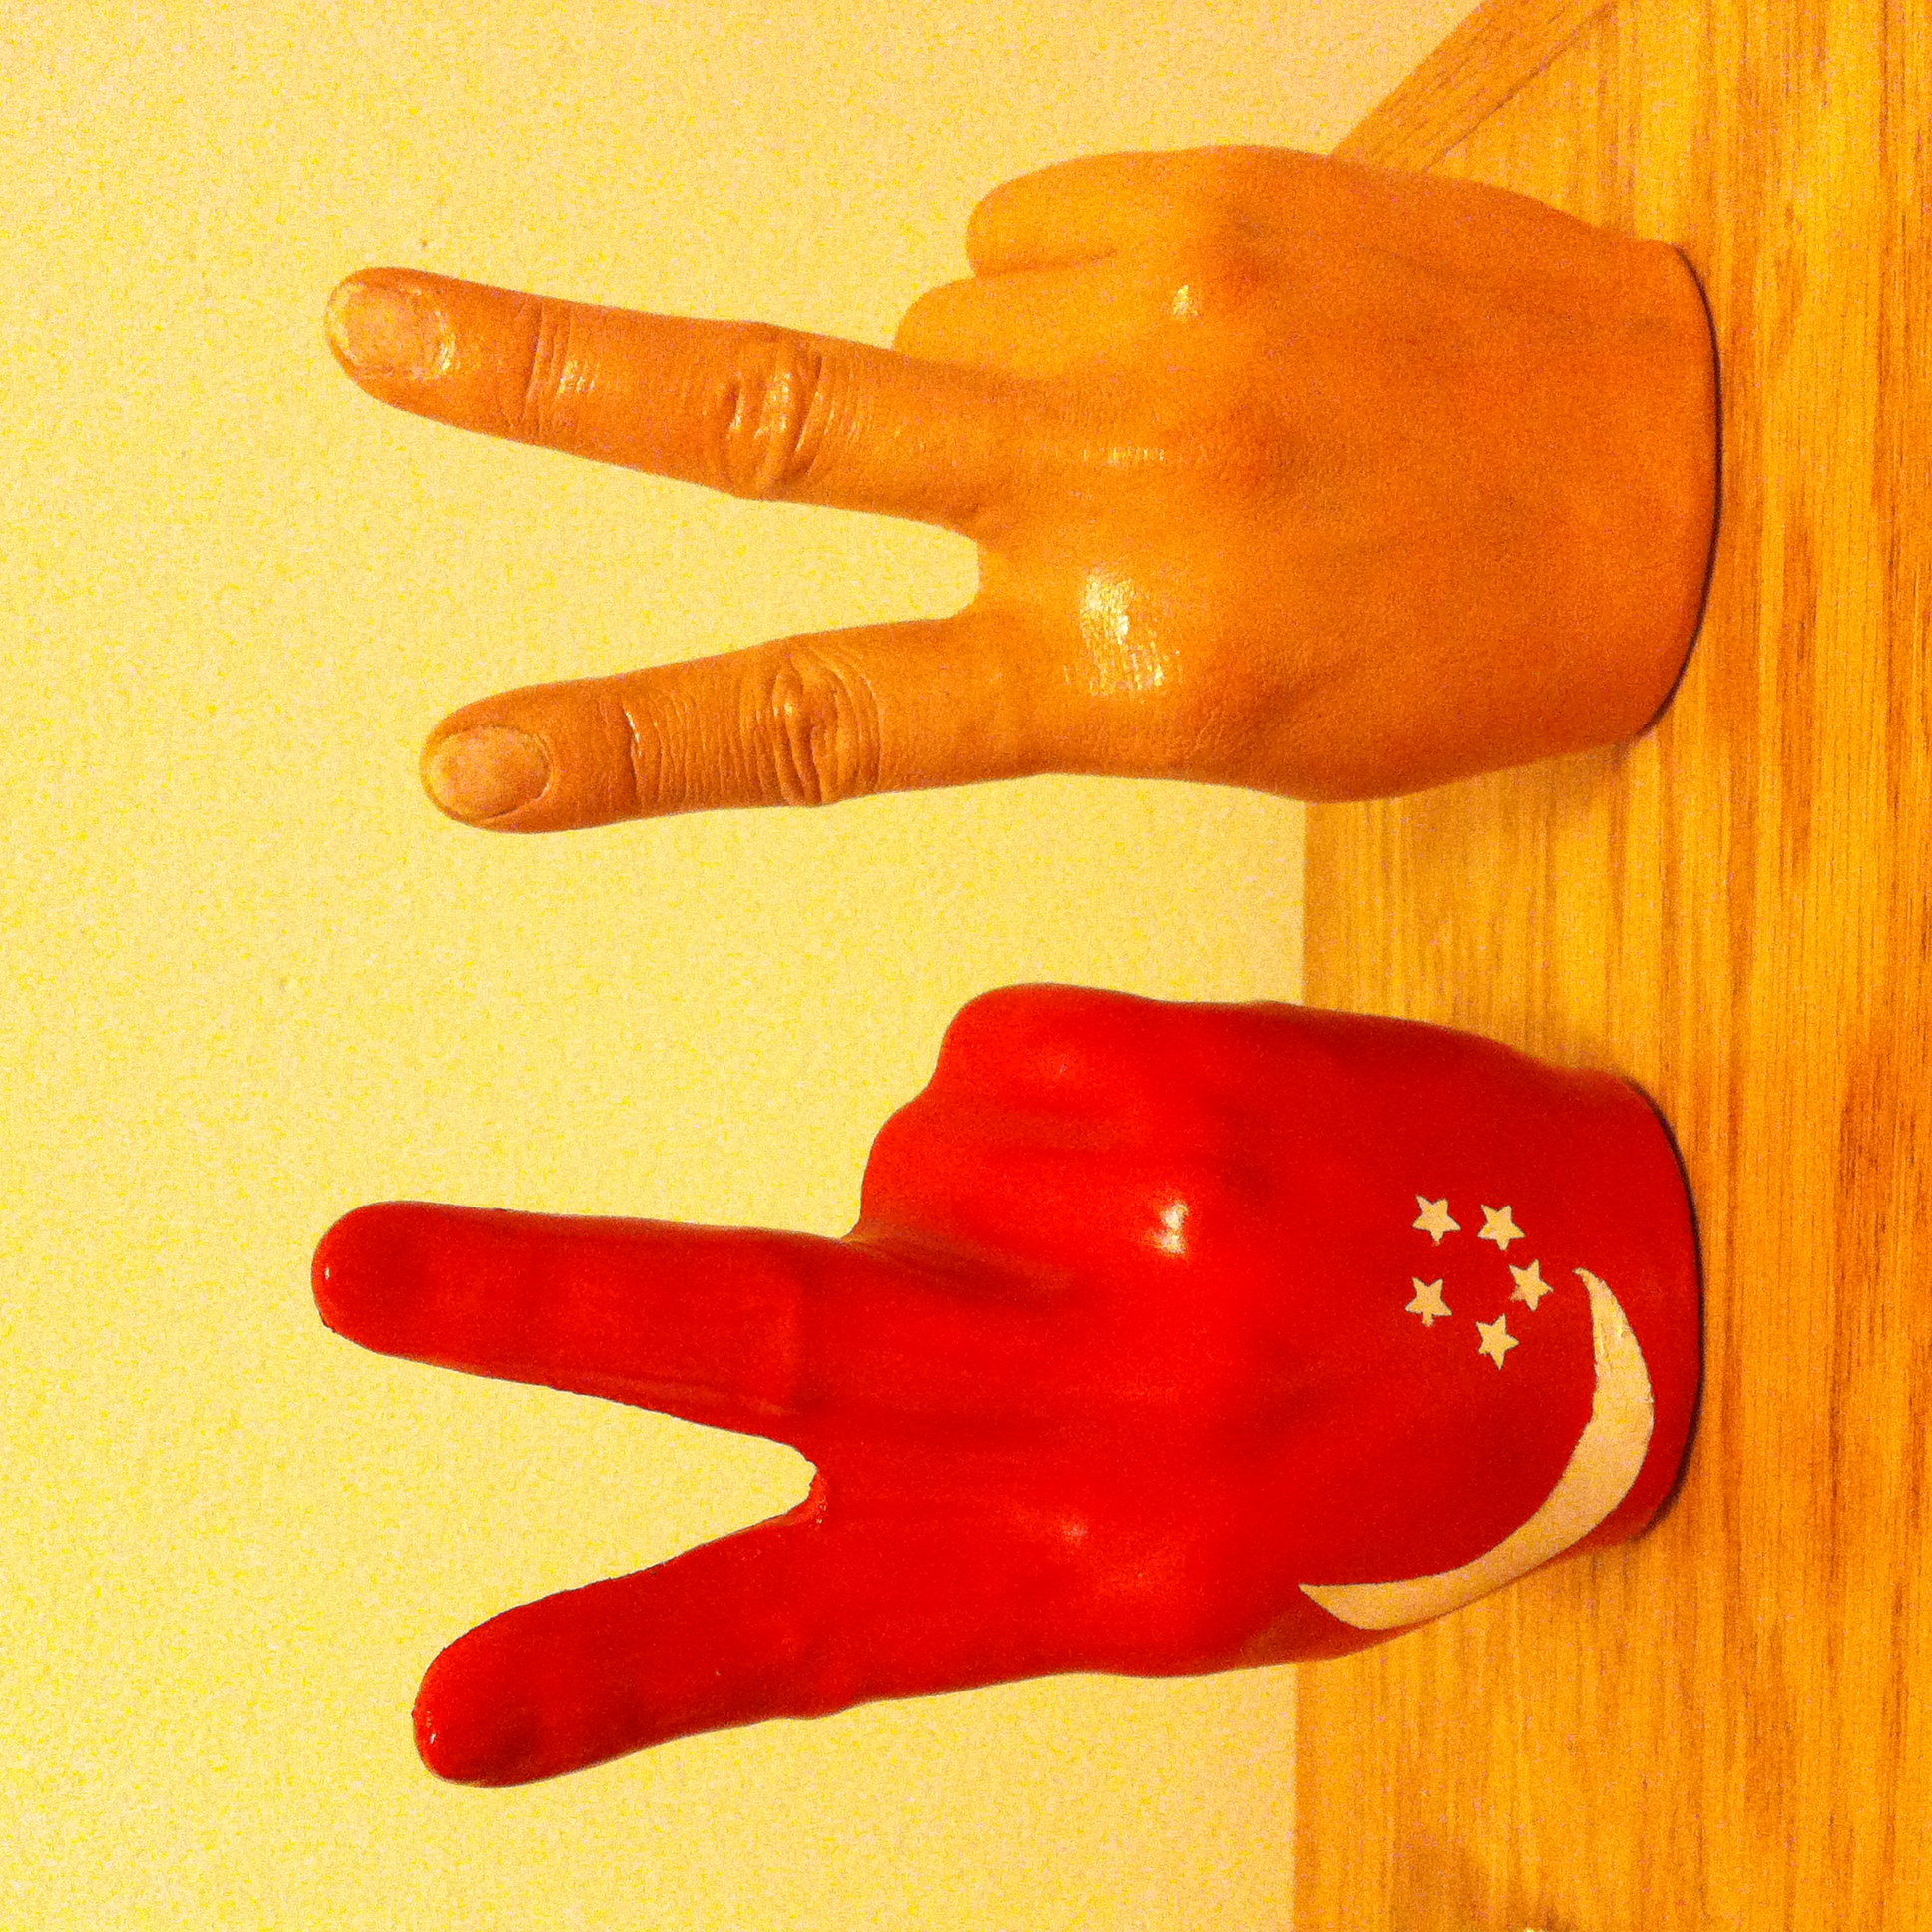 Molding & Casting Project - Plastic & plaster hands